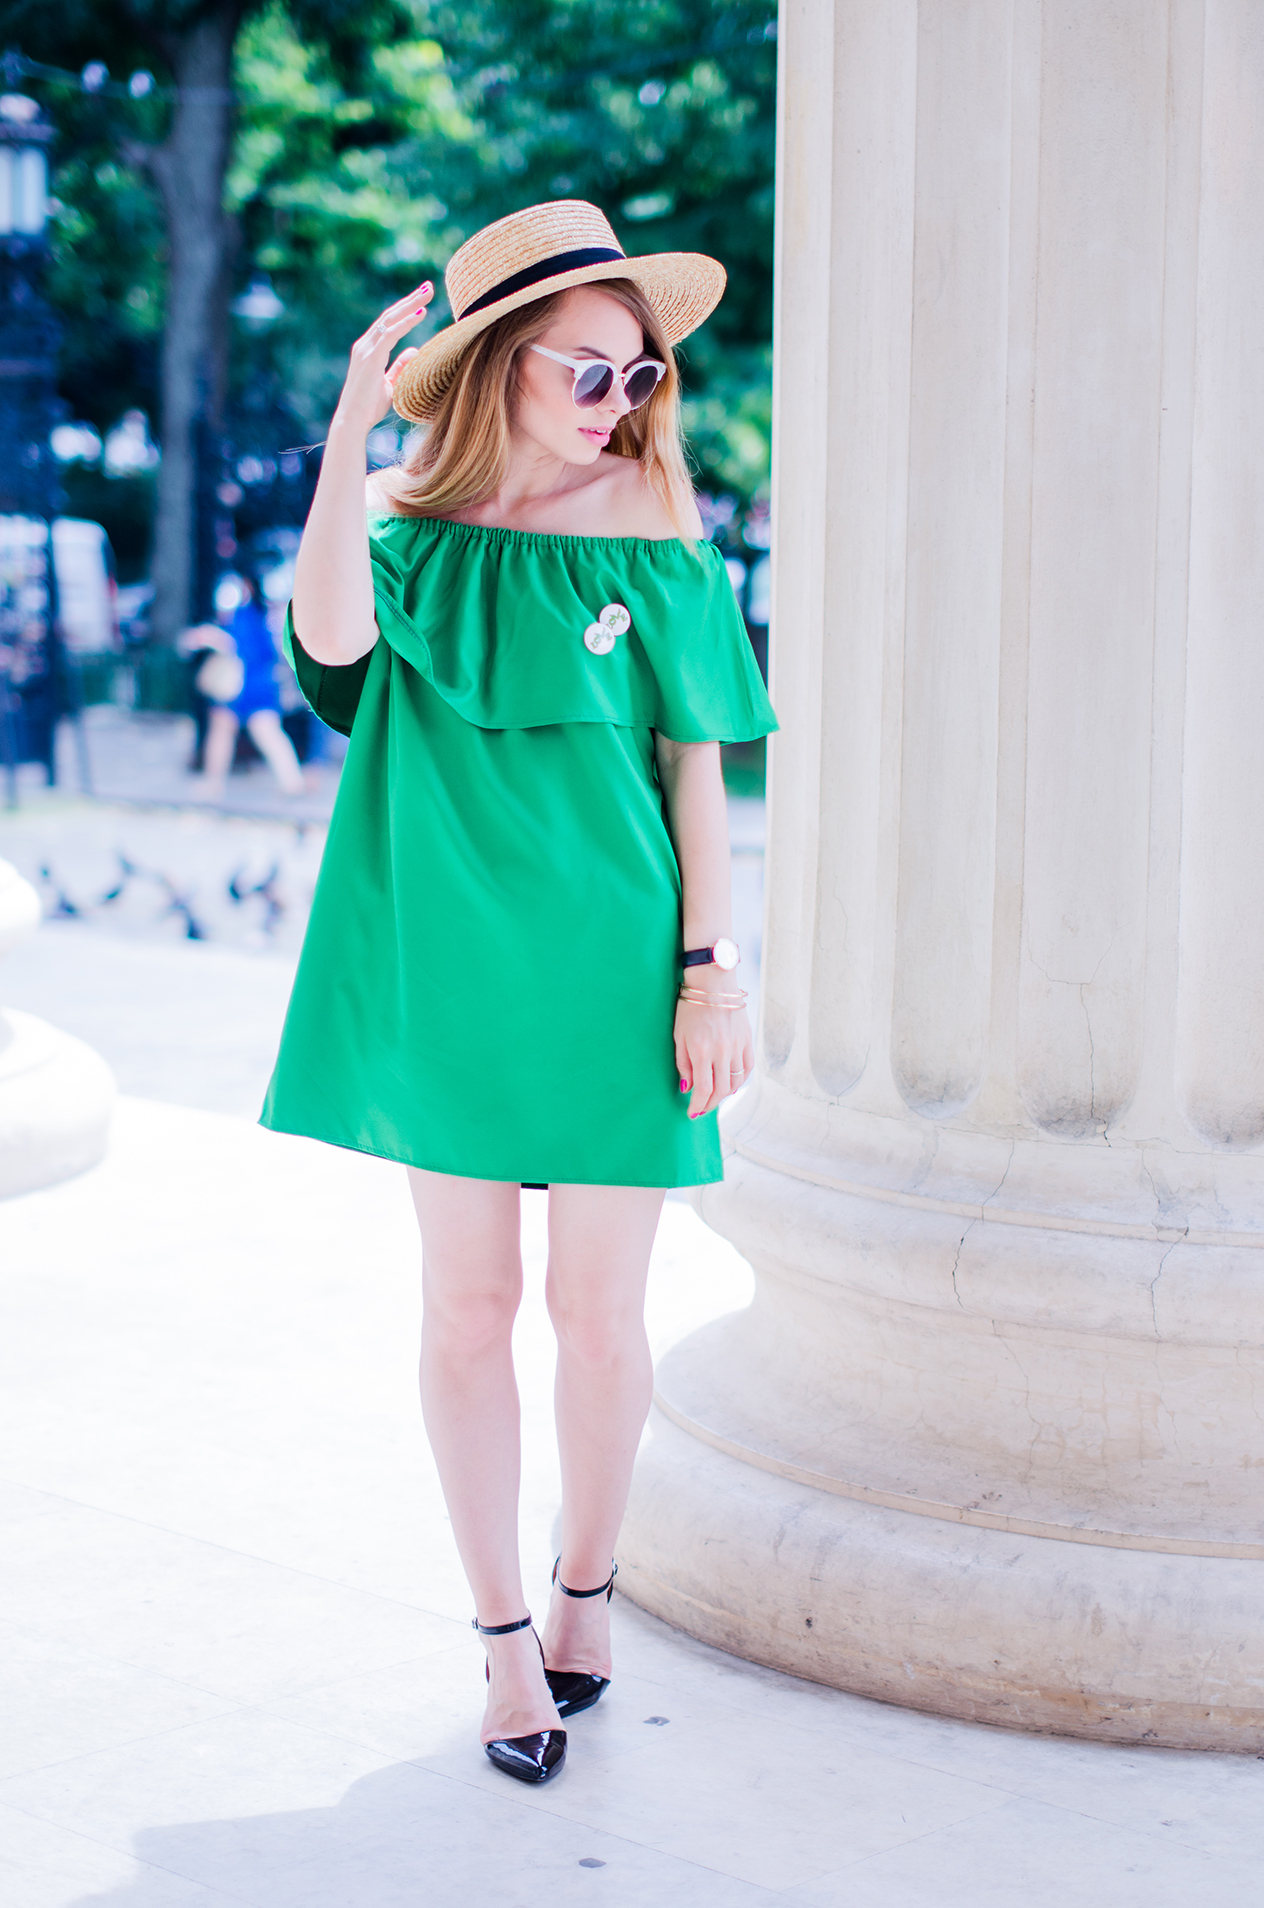 green-off-shoulder-dress-hm-straw-hat-strappy-shoes (2)